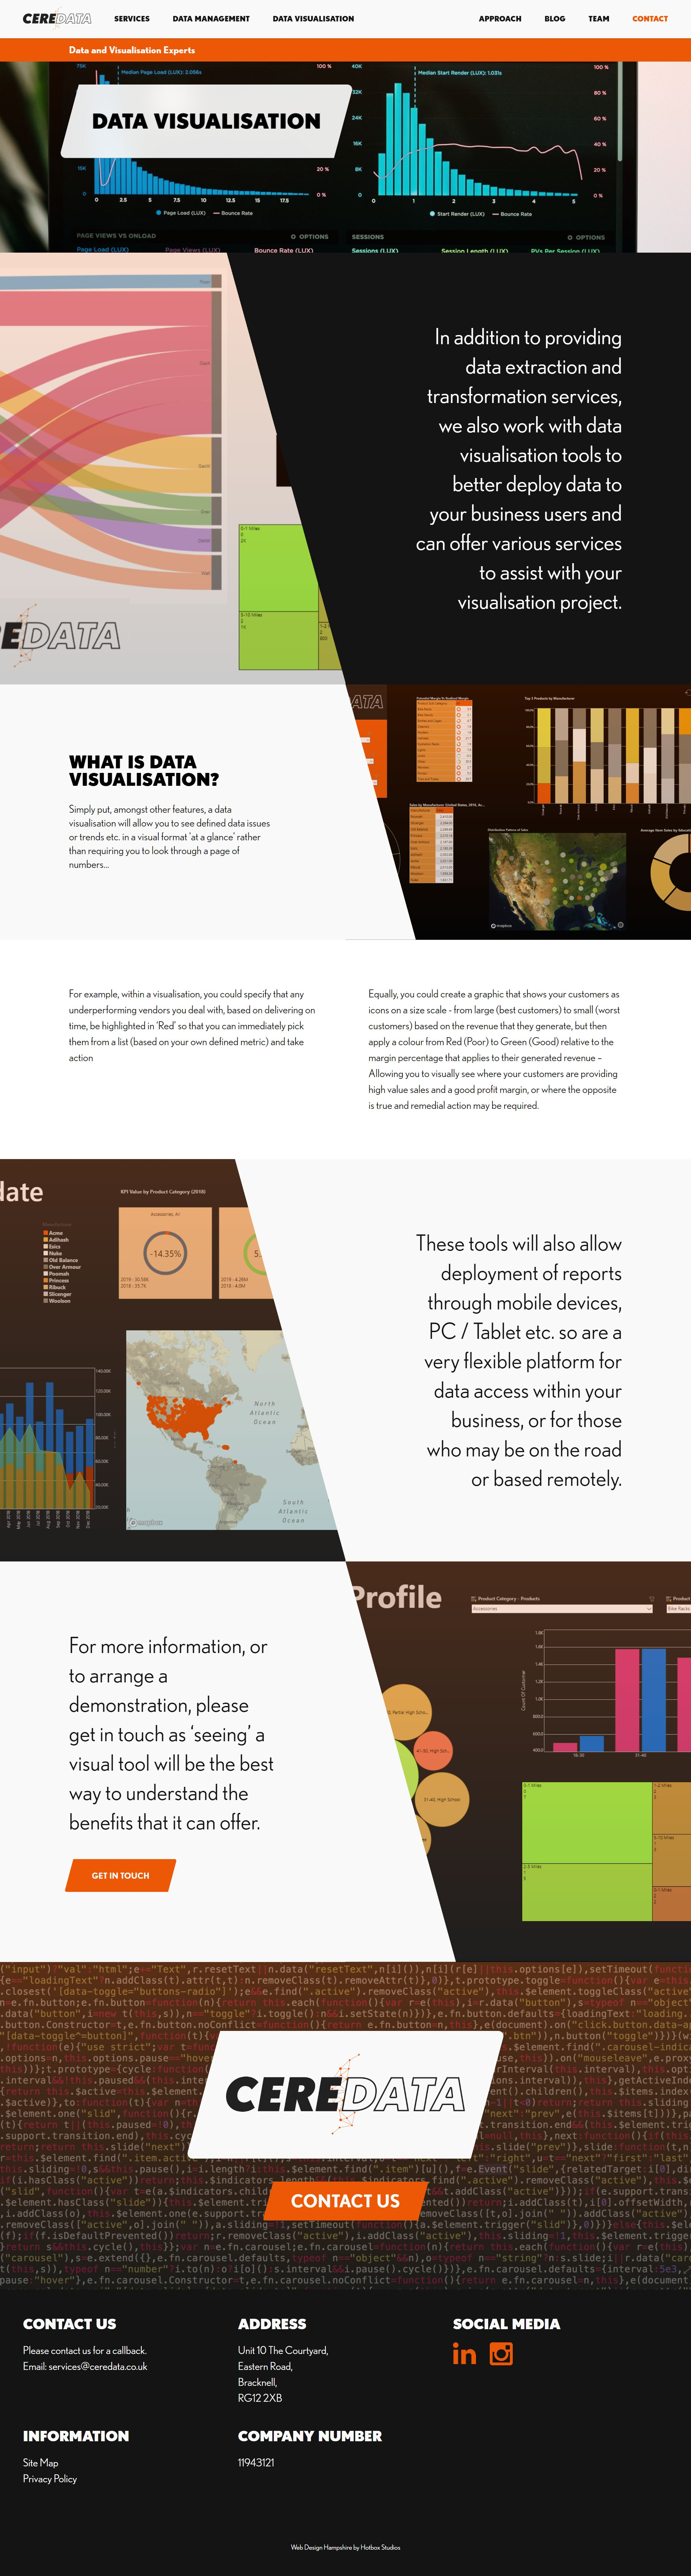 Ceredata Wordpress Web Design SP004 Data Visualisation